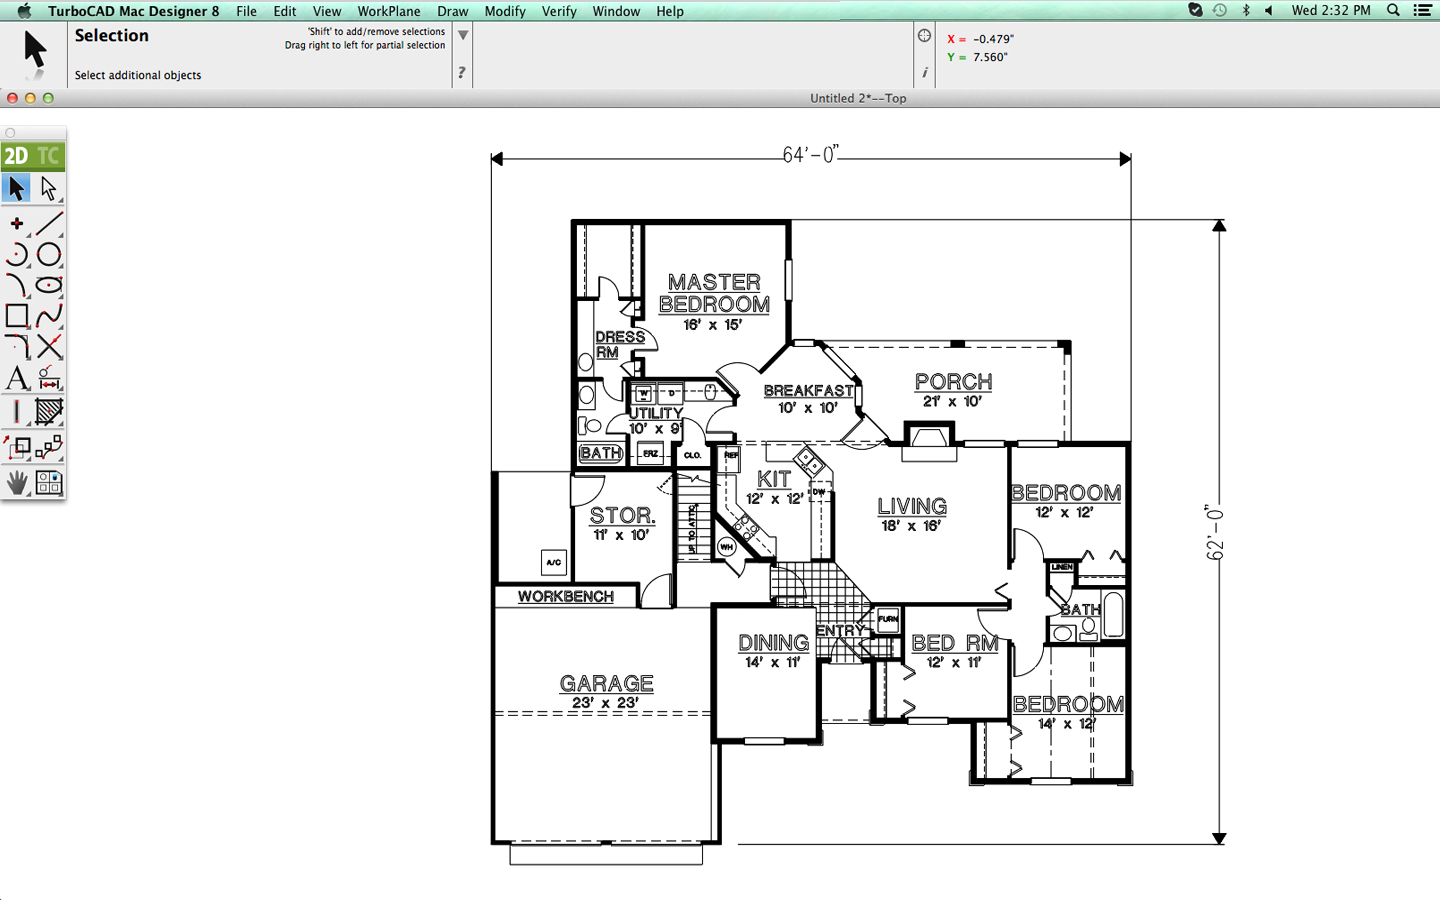 TurboCAD Mac Designer Floorplan